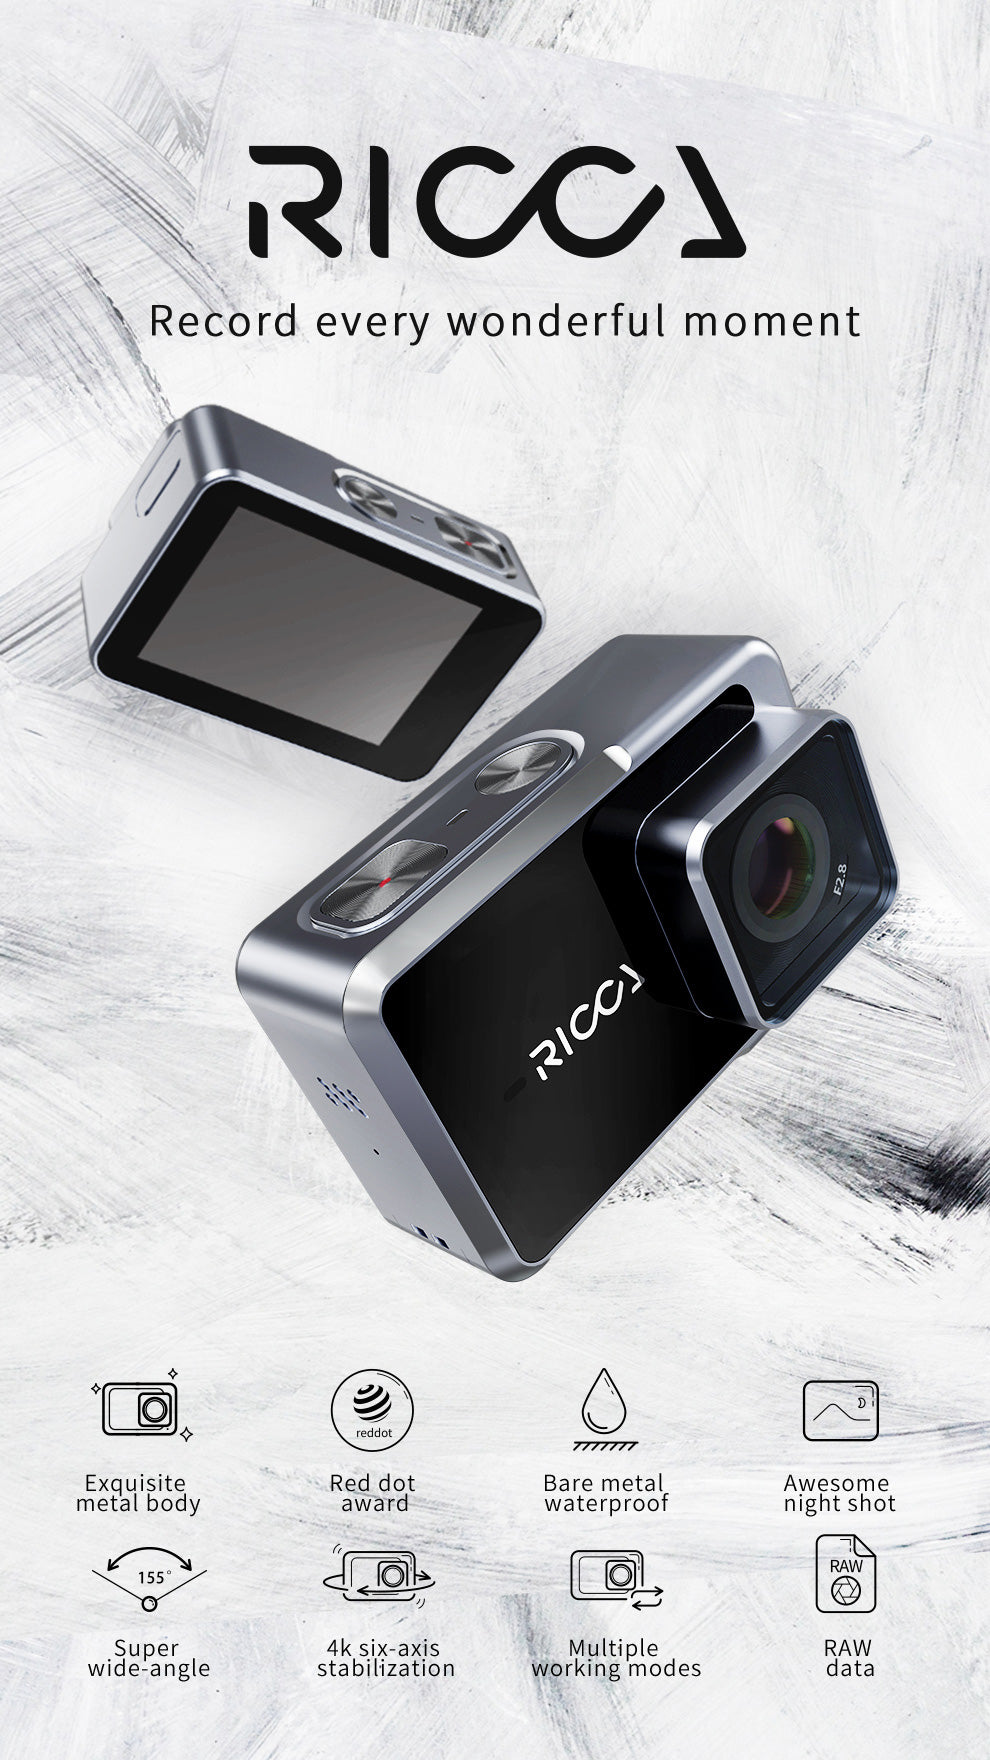 Feiyu Ricca Sports Action Camera Overview